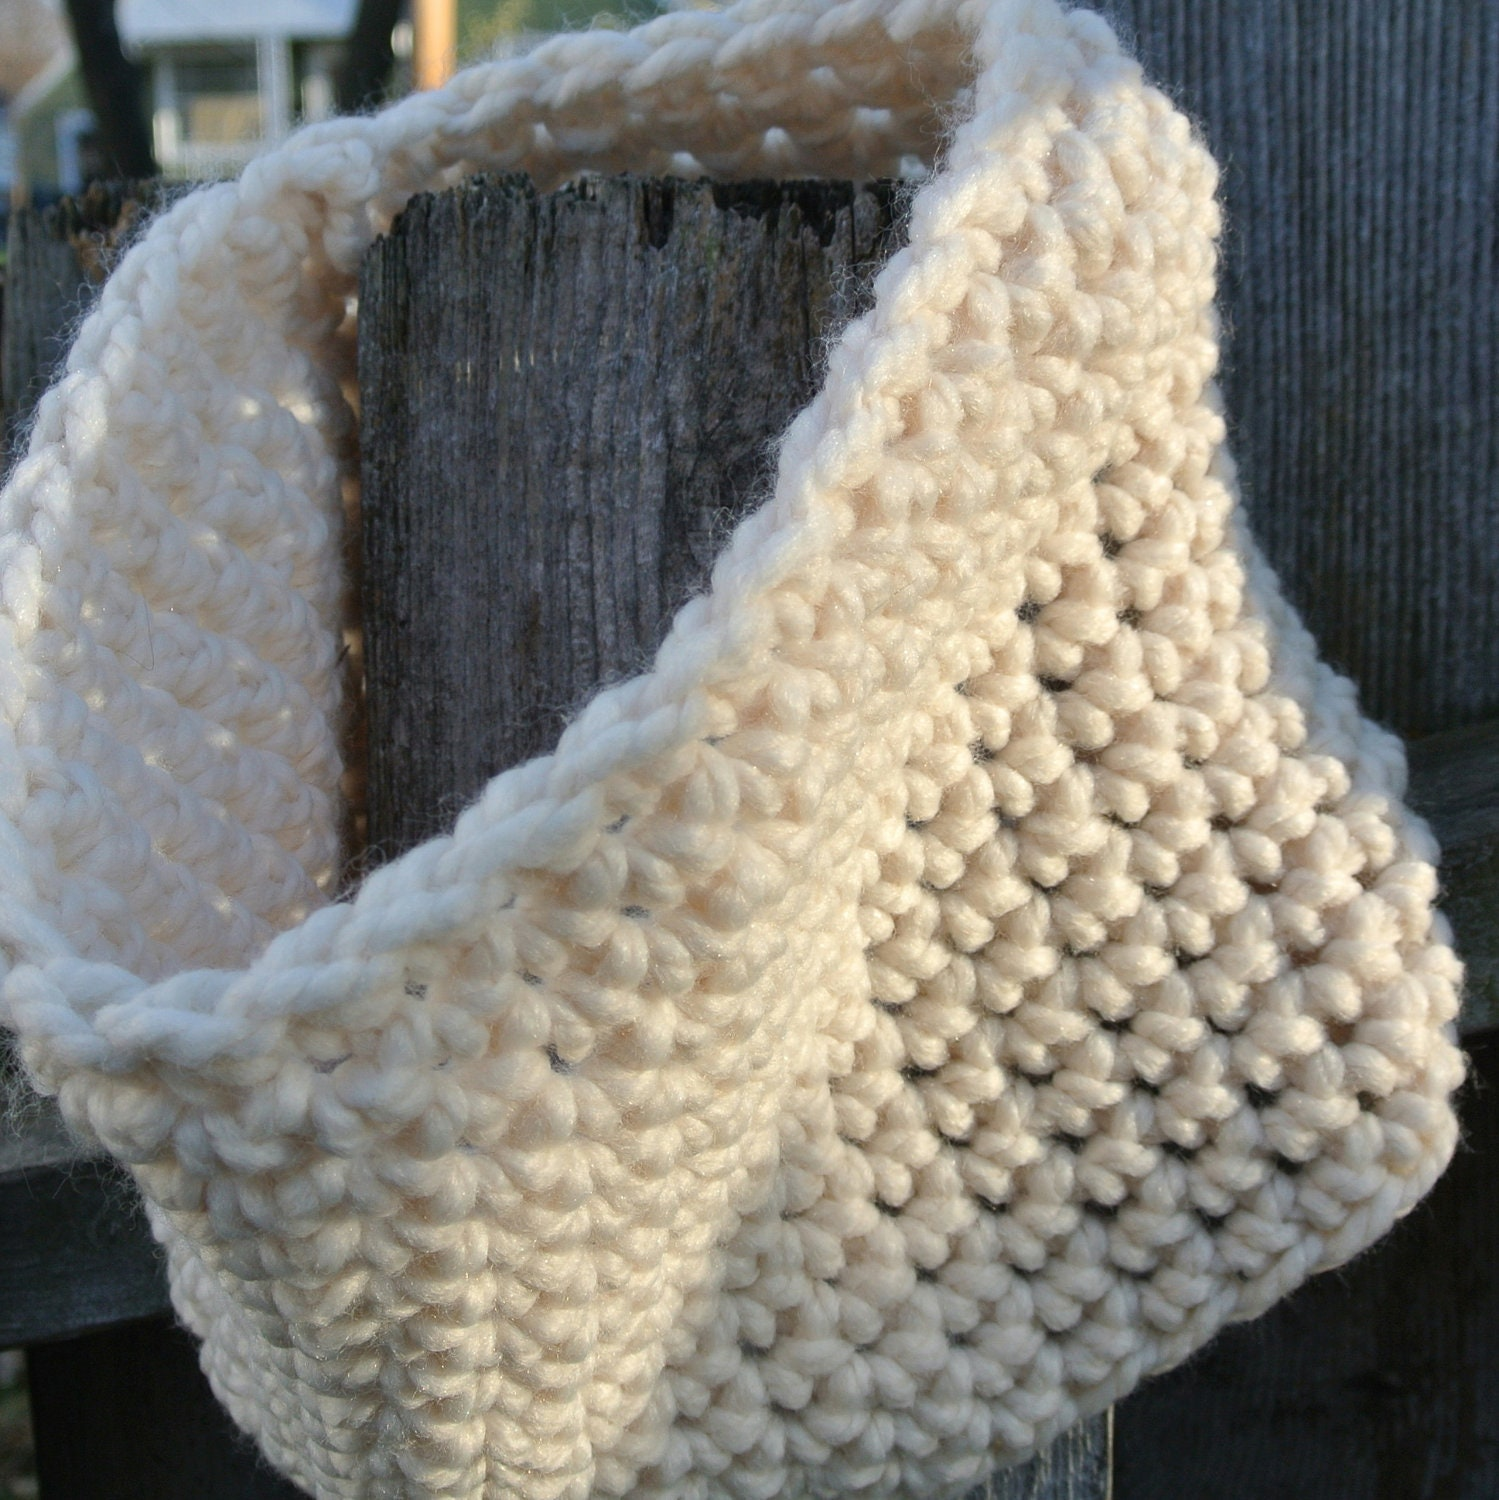 SALE Black Friday/Cyber Monday- White Cowl, Crocheted Neck Warmer in Ivory - KnitMomWi